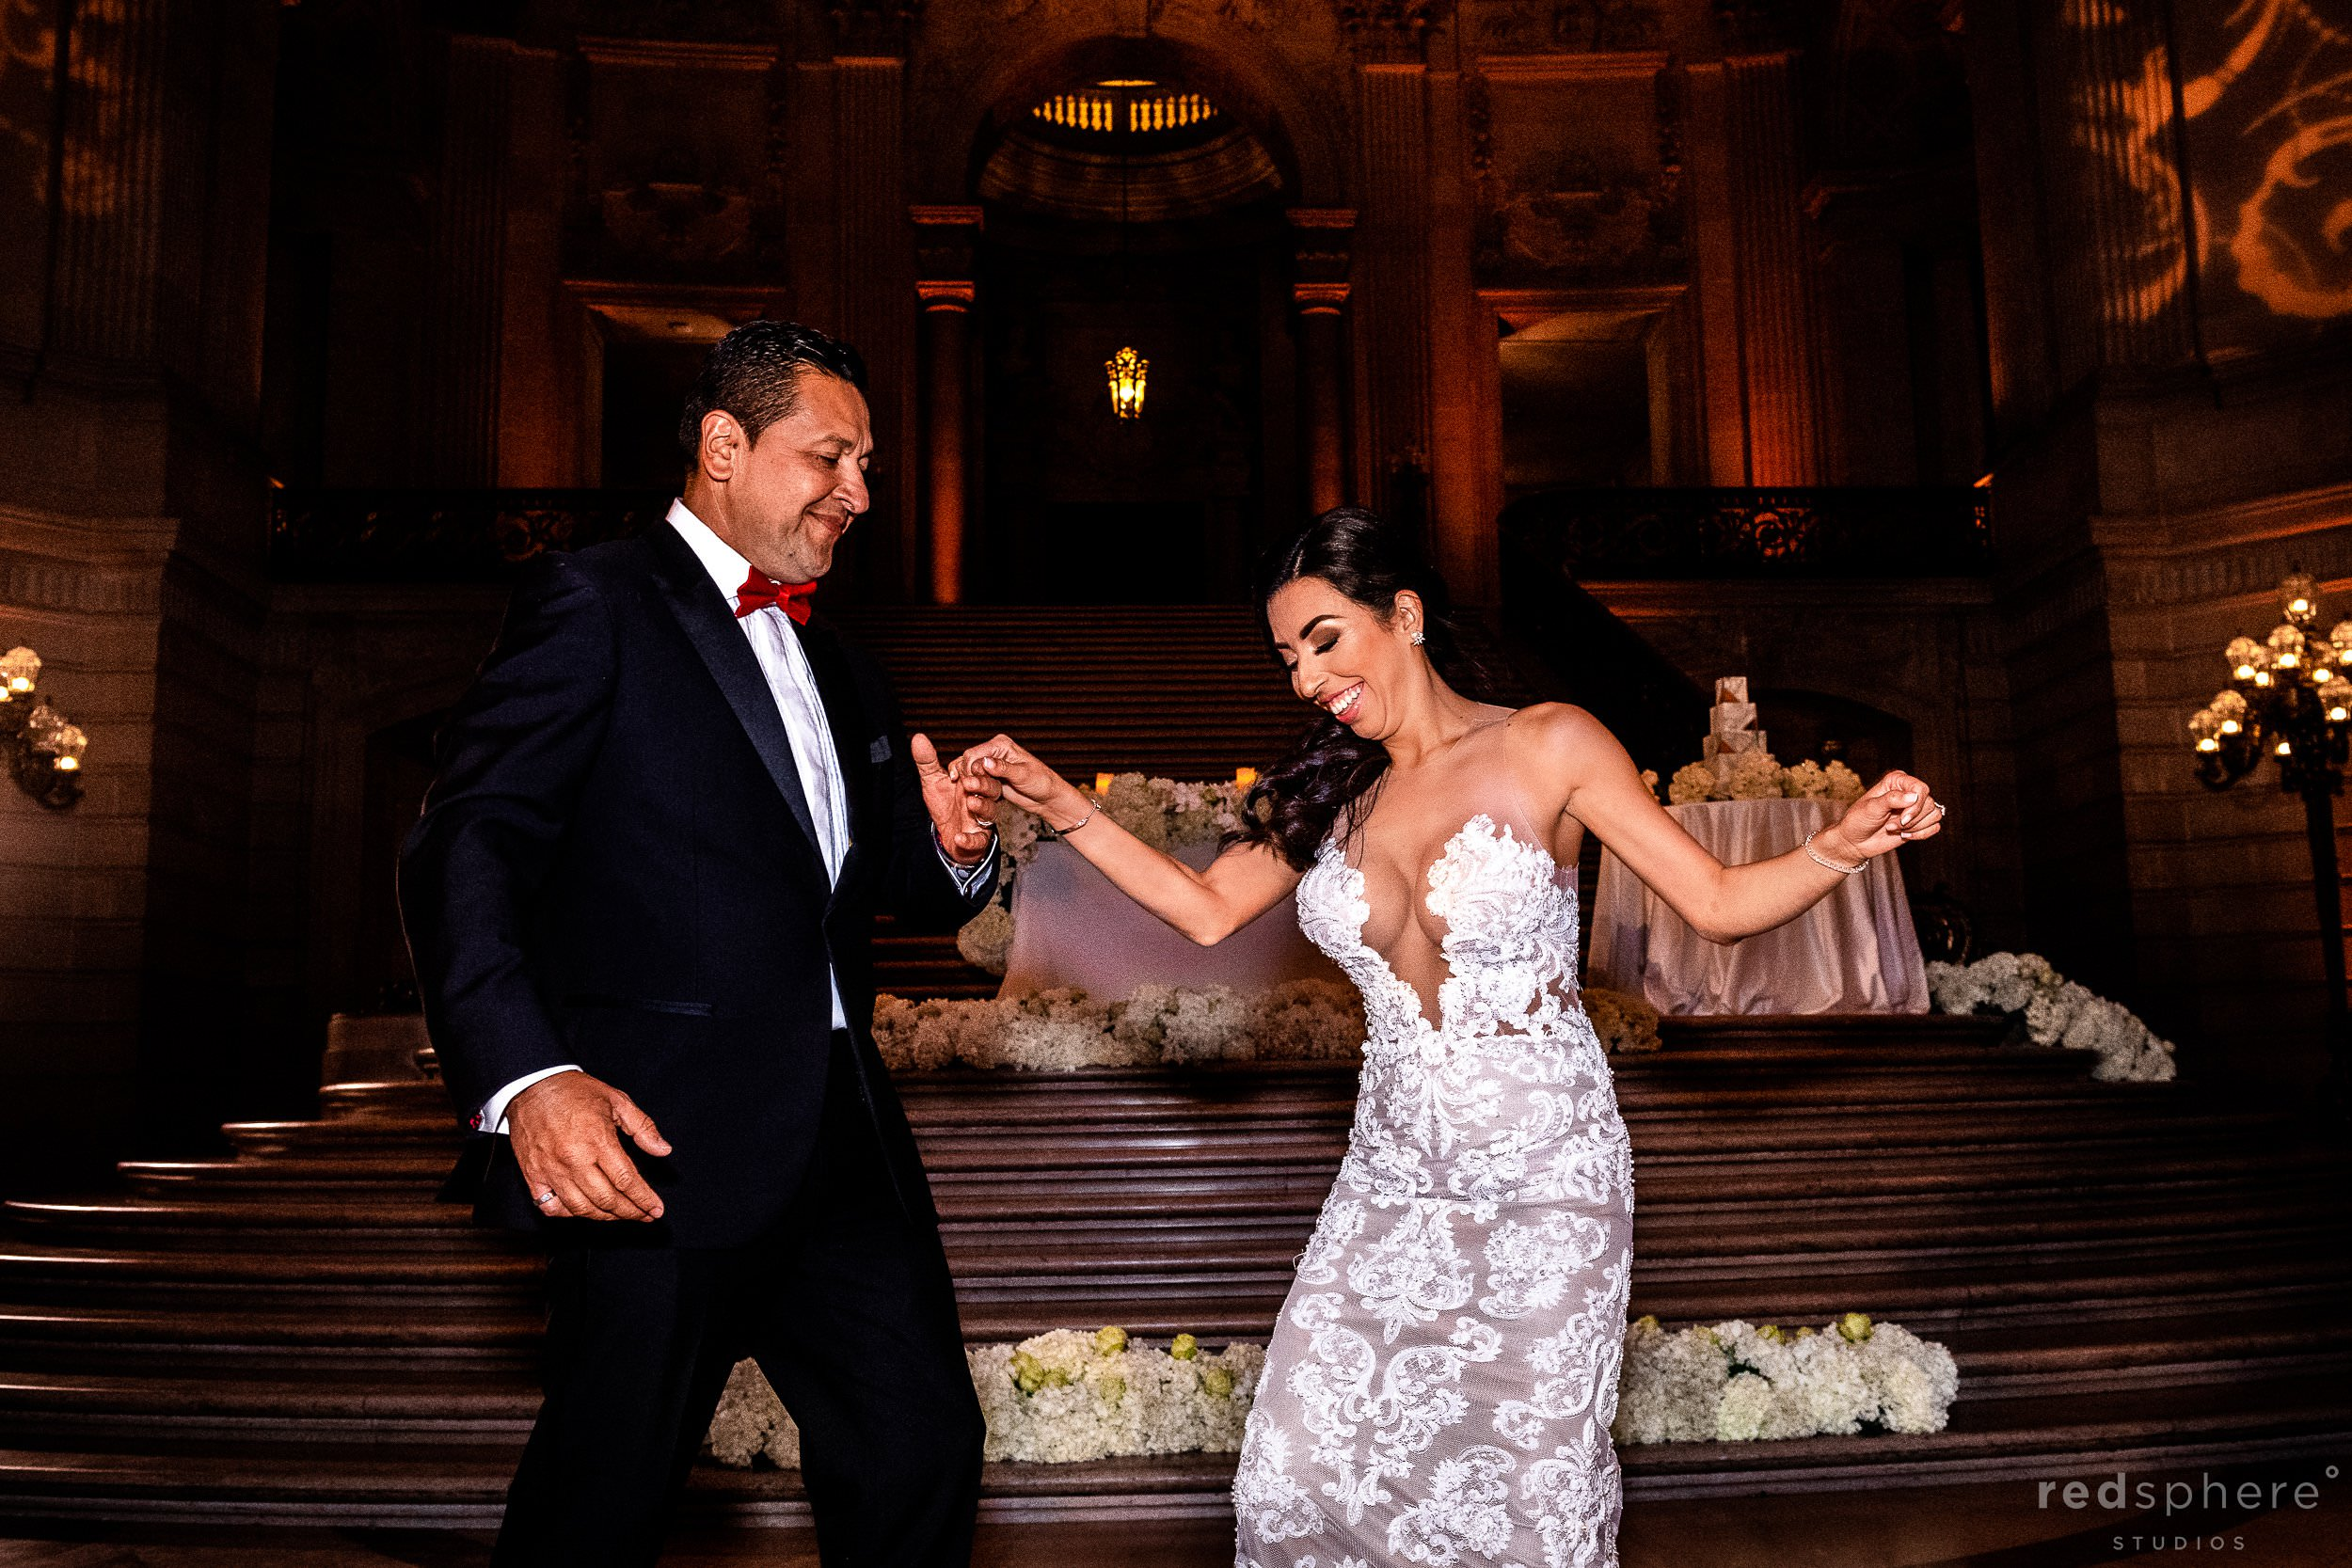 San Francisco City Hall wedding reception - Bride Dancing With Her Father